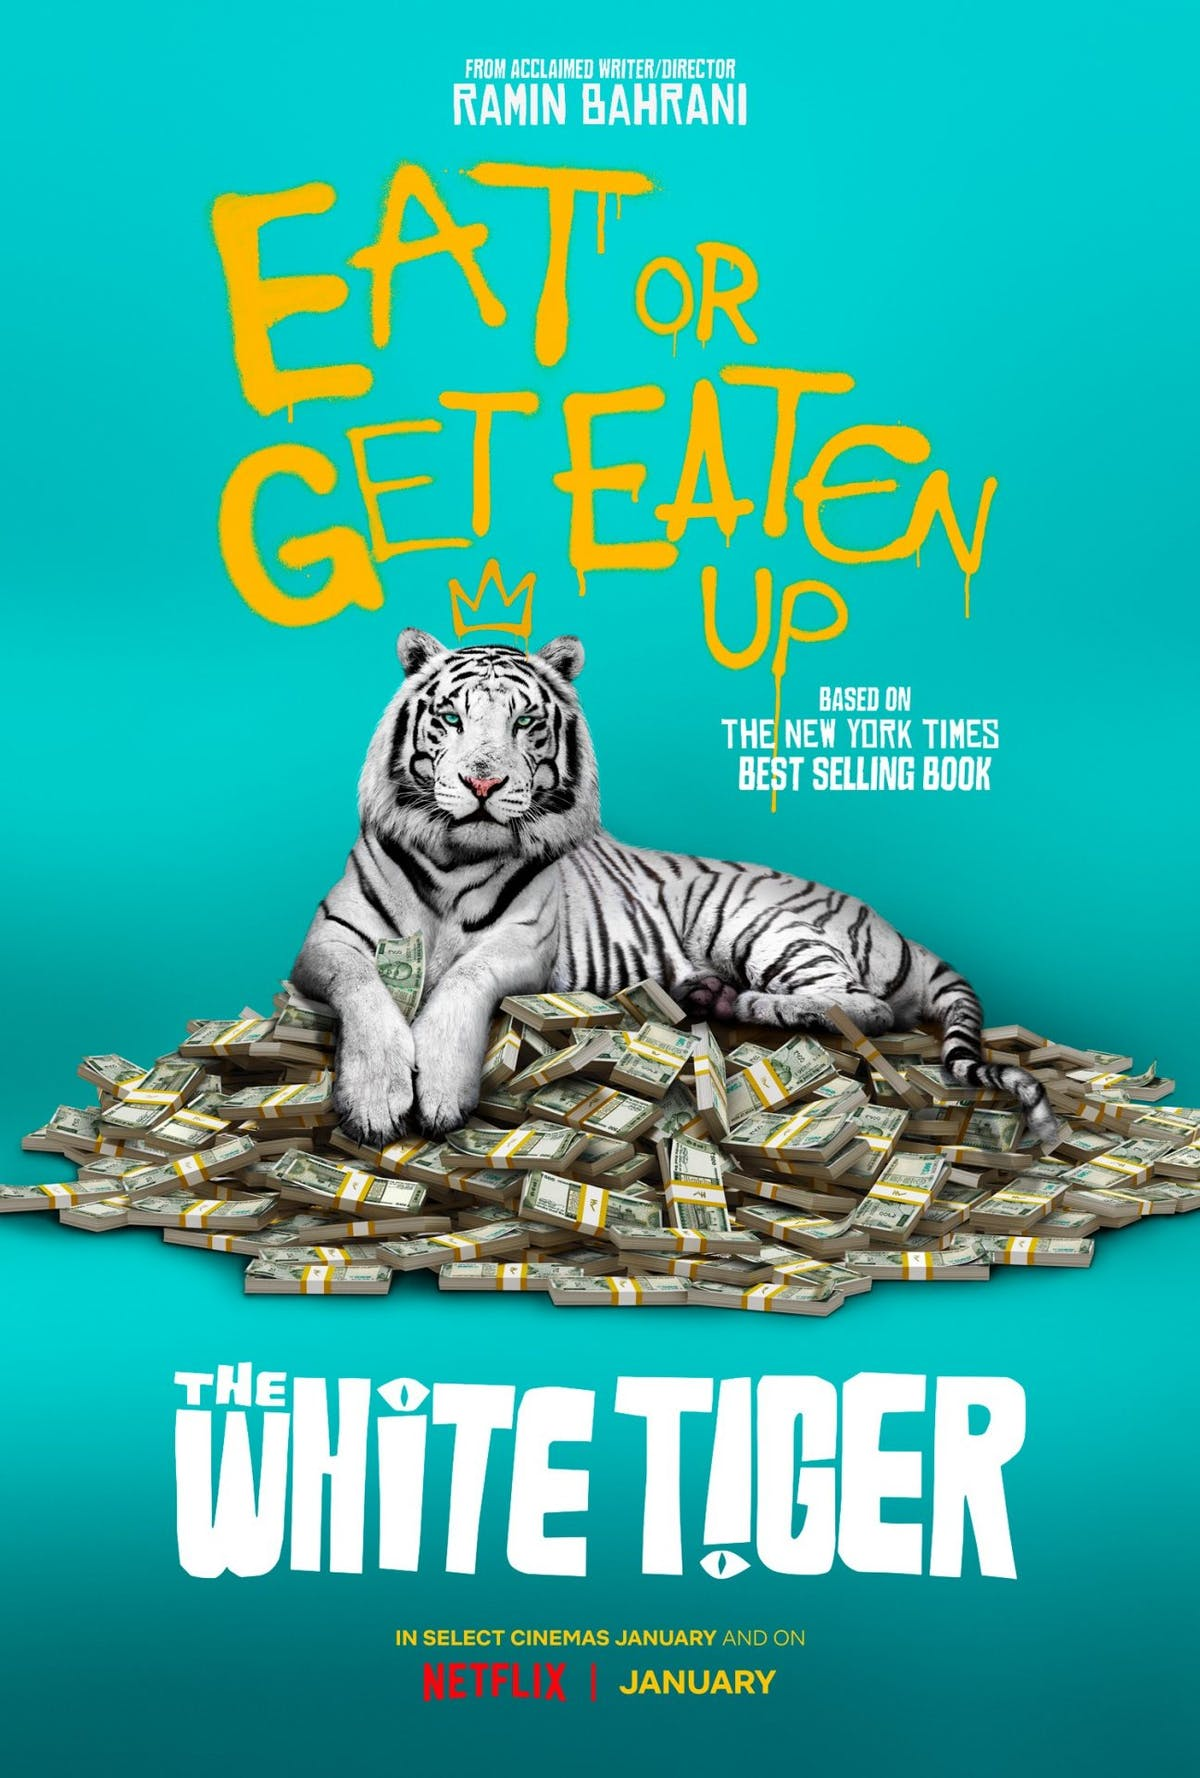 The White Tiger movie poster